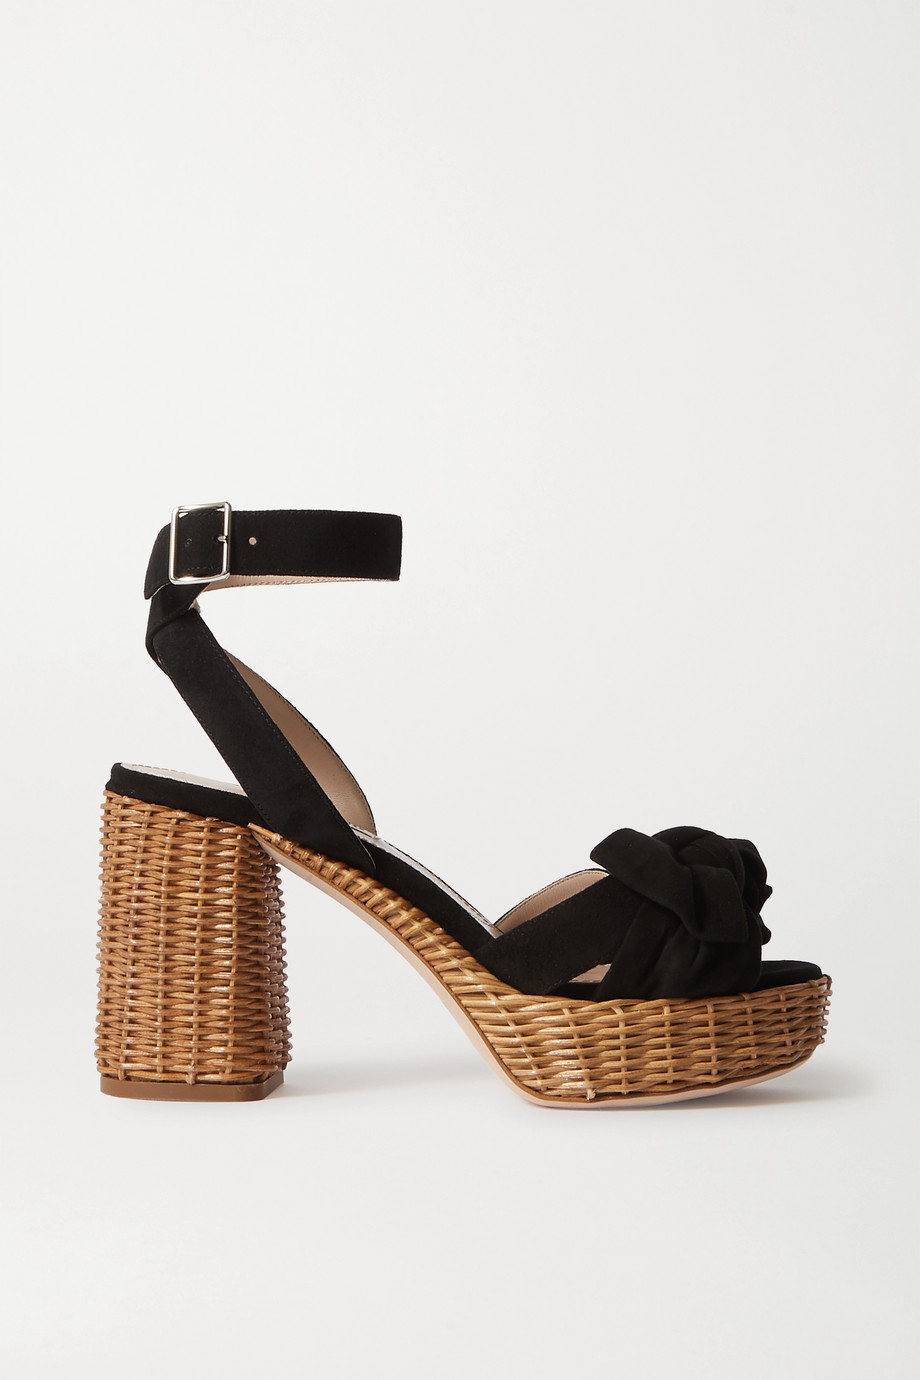 Miu Miu Suede and raffia platform sandals